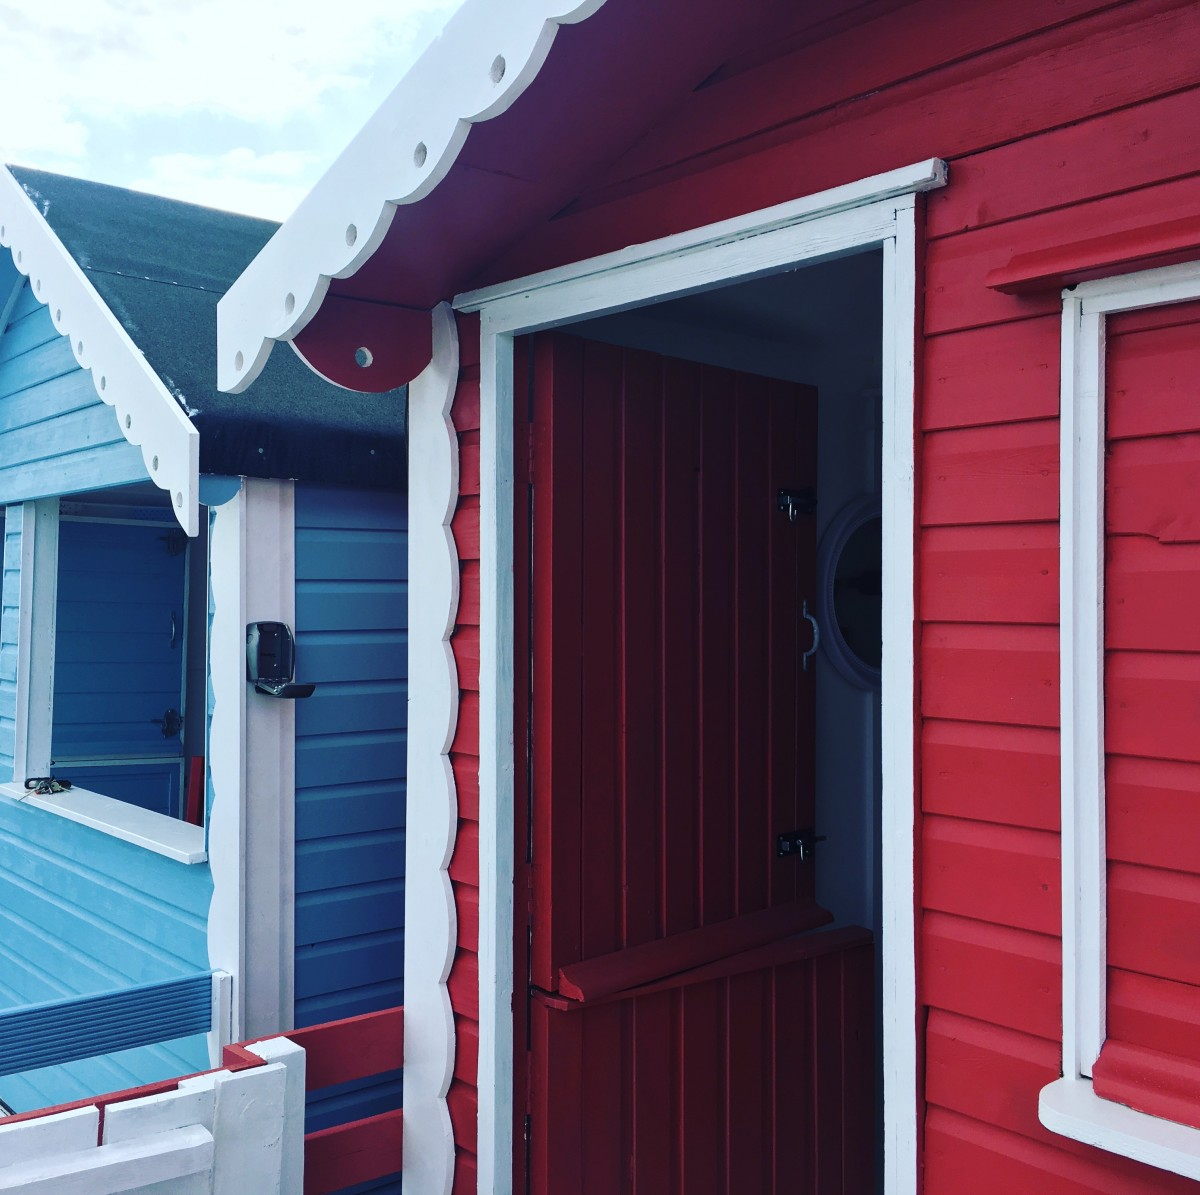 Beach Hut Decor Ideas: Mickey and Minnie Exterior Paint